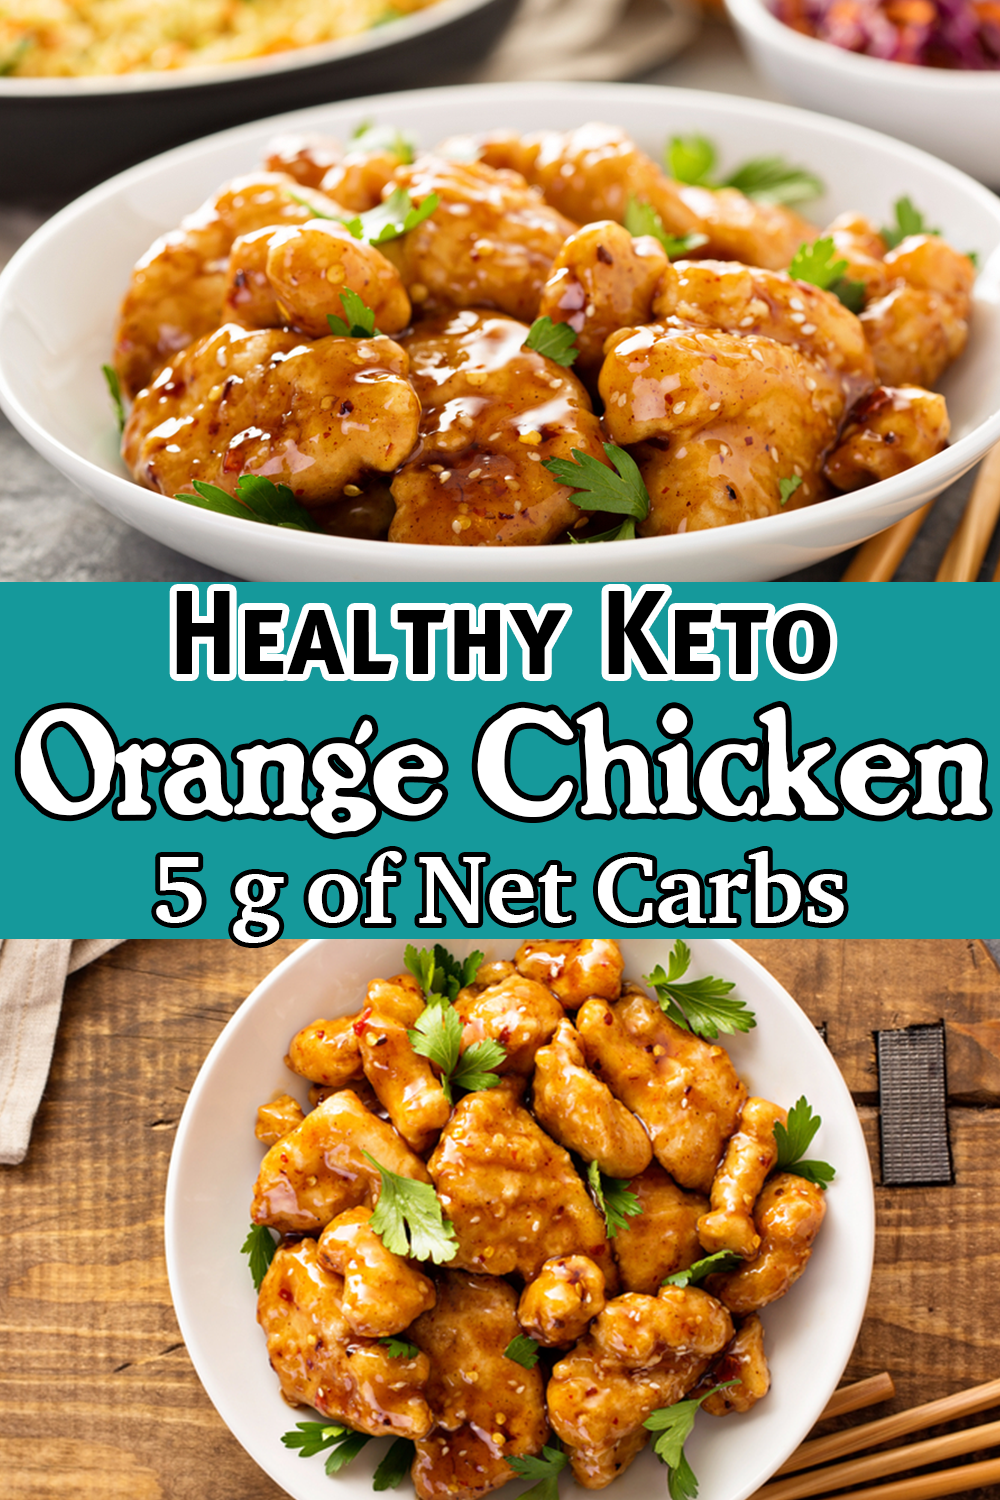 Keto Orange Chicken Low Carb Orange Marmalade Chicken Recipe Low Carb Orange Chicken Recipe Low Carb Diet Recipes Orange Chicken Recipe